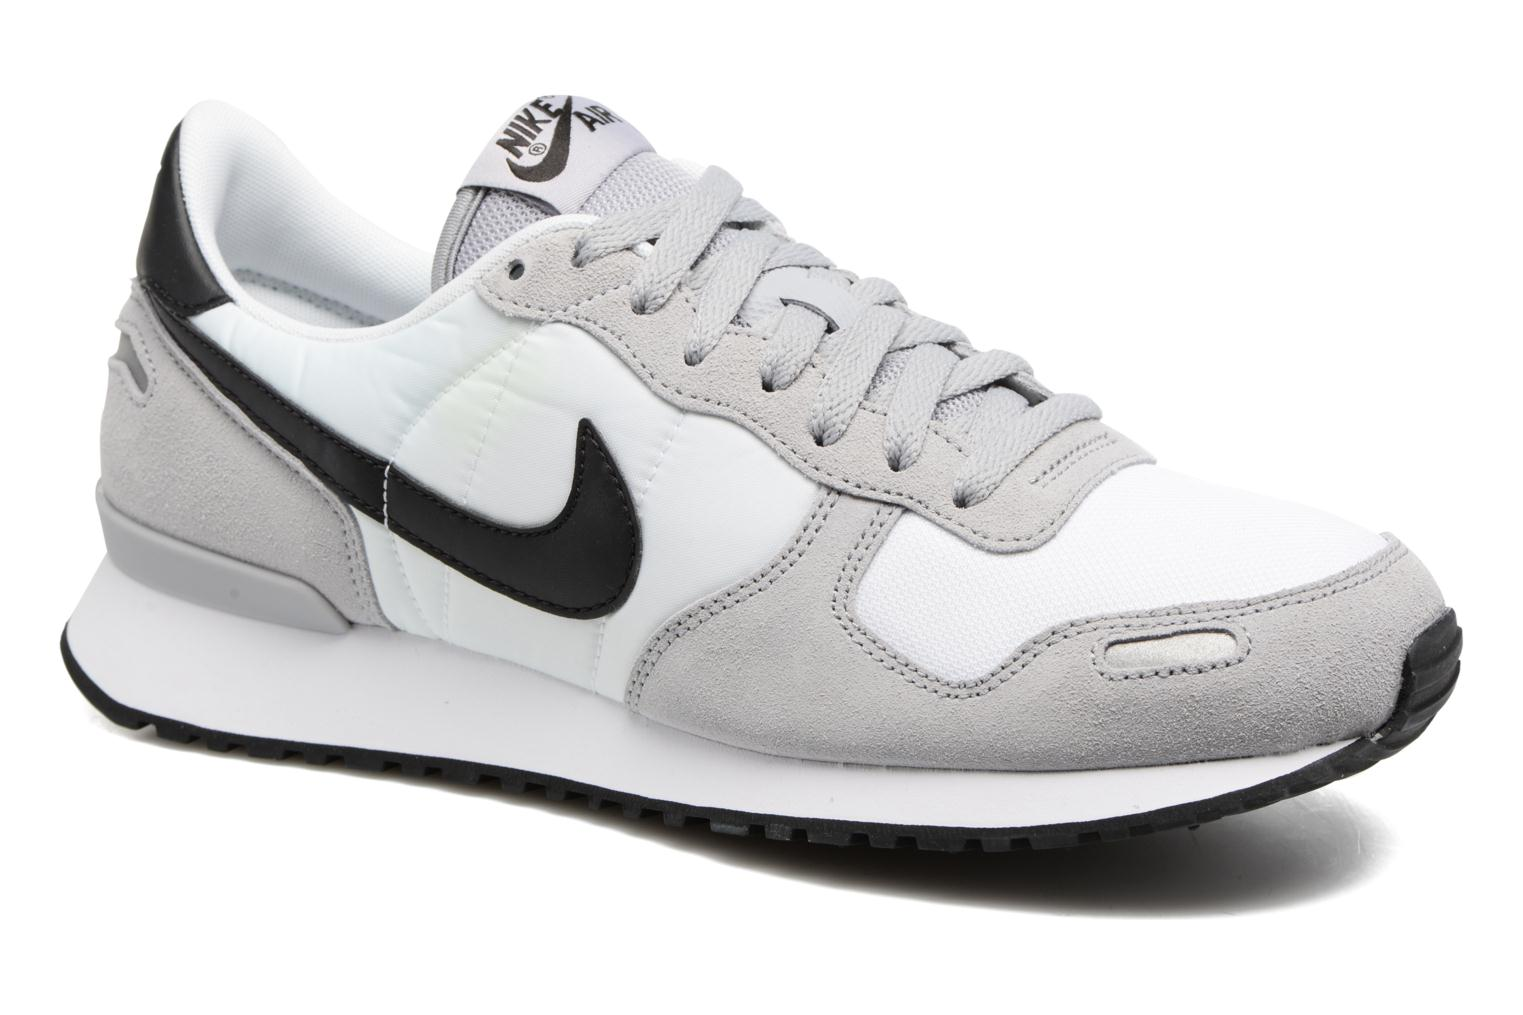 Nike Air Vrtx Wolf Grey/Black-White-Black